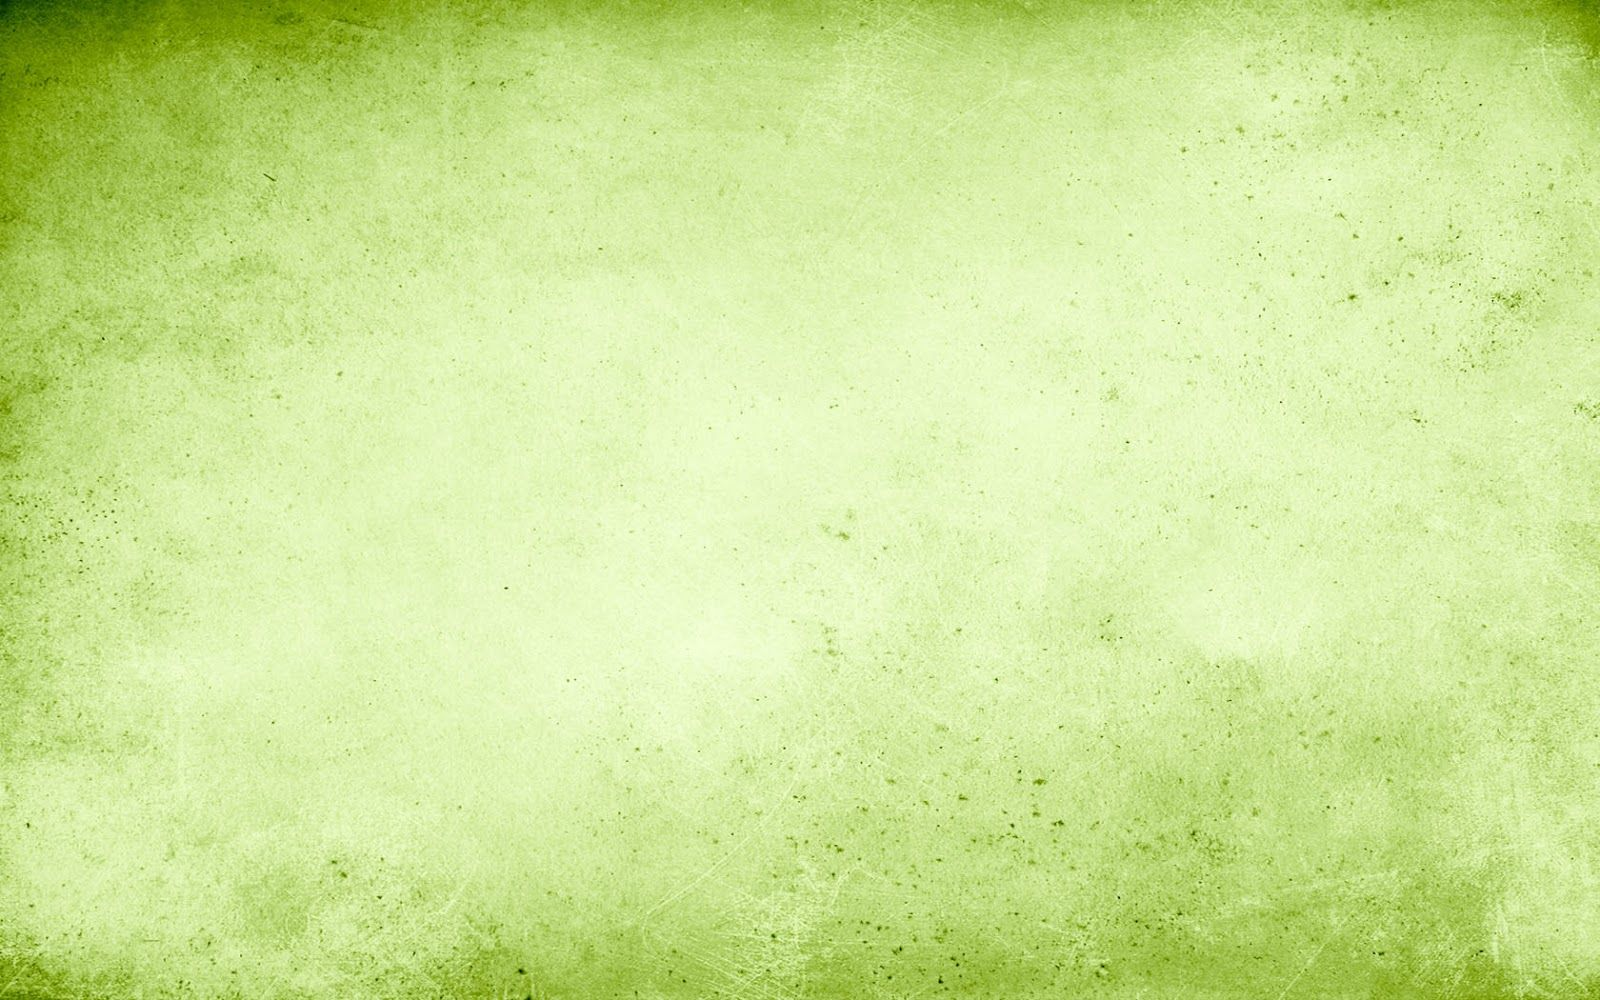 3 Free Sets Of Tumblr Backgrounds Tumblr Backgrounds Cool Backgrounds Green Backgrounds